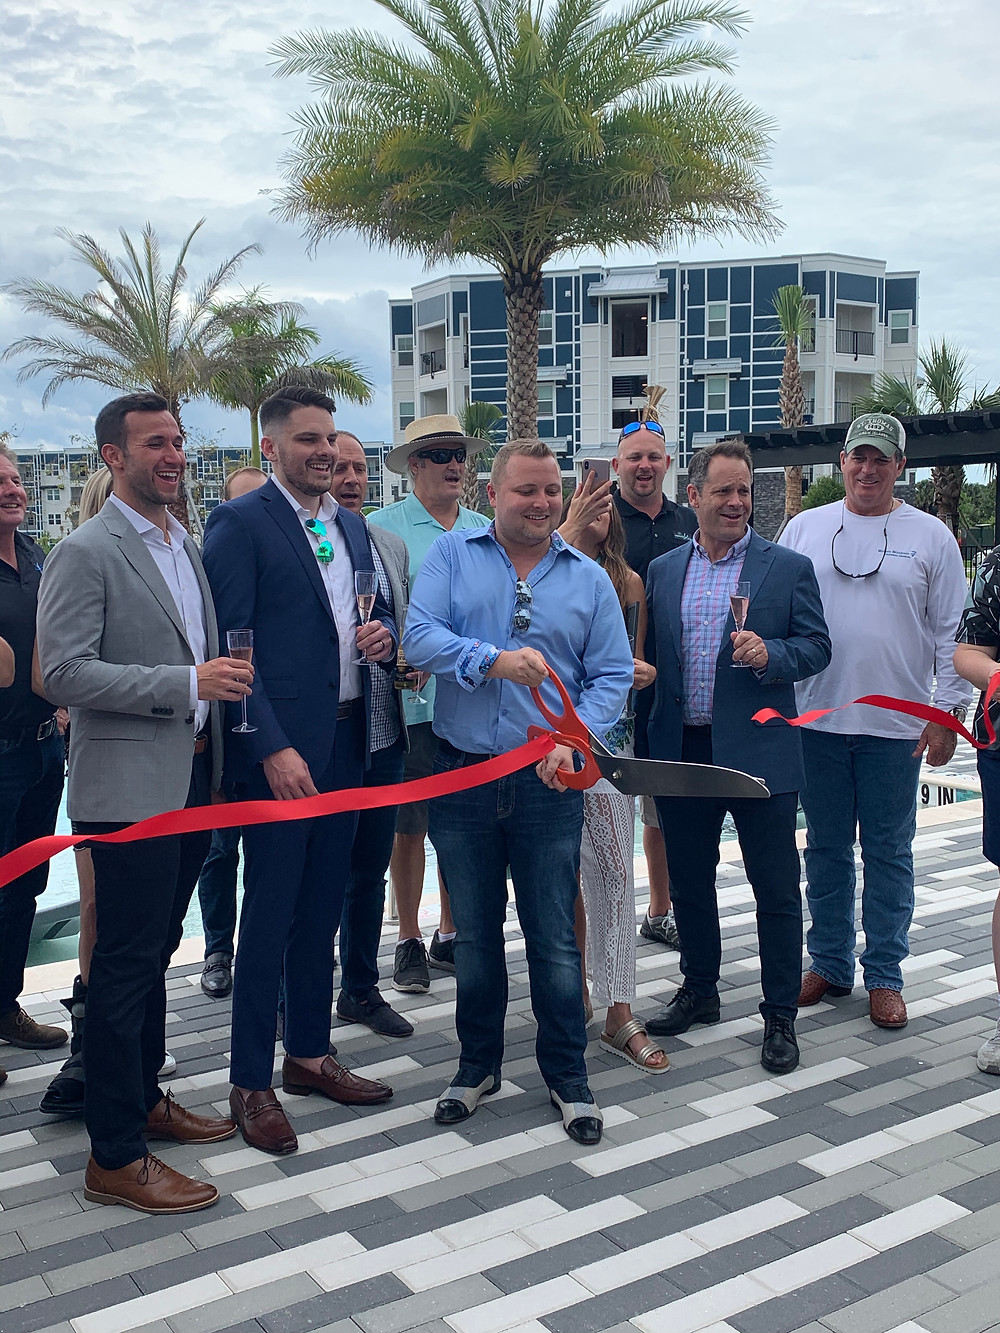 Ribbon Cutting Event by a pool